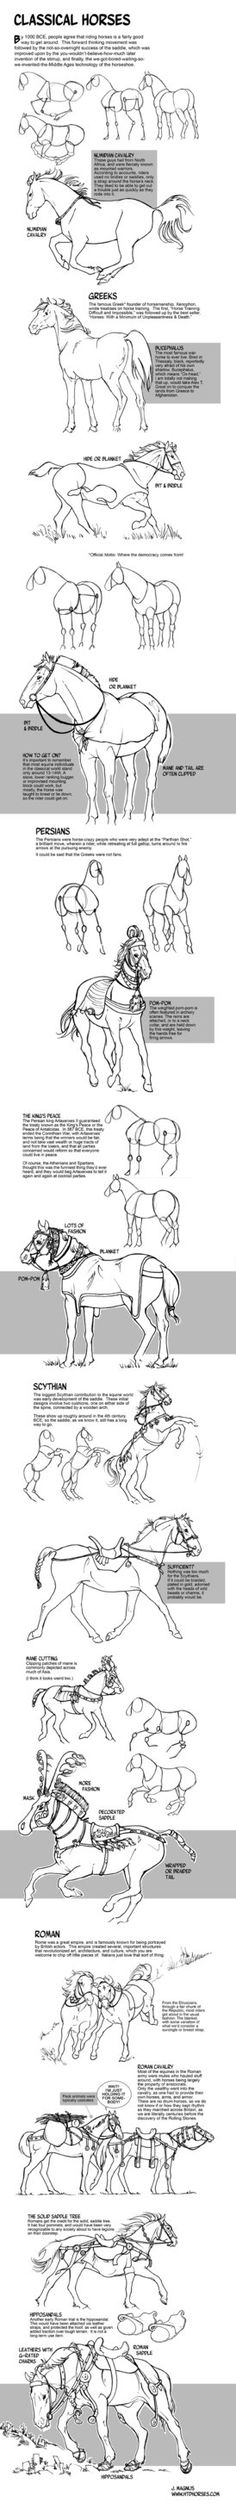 How to Draw Horses of the Classical World by sketcherjak on DeviantArt